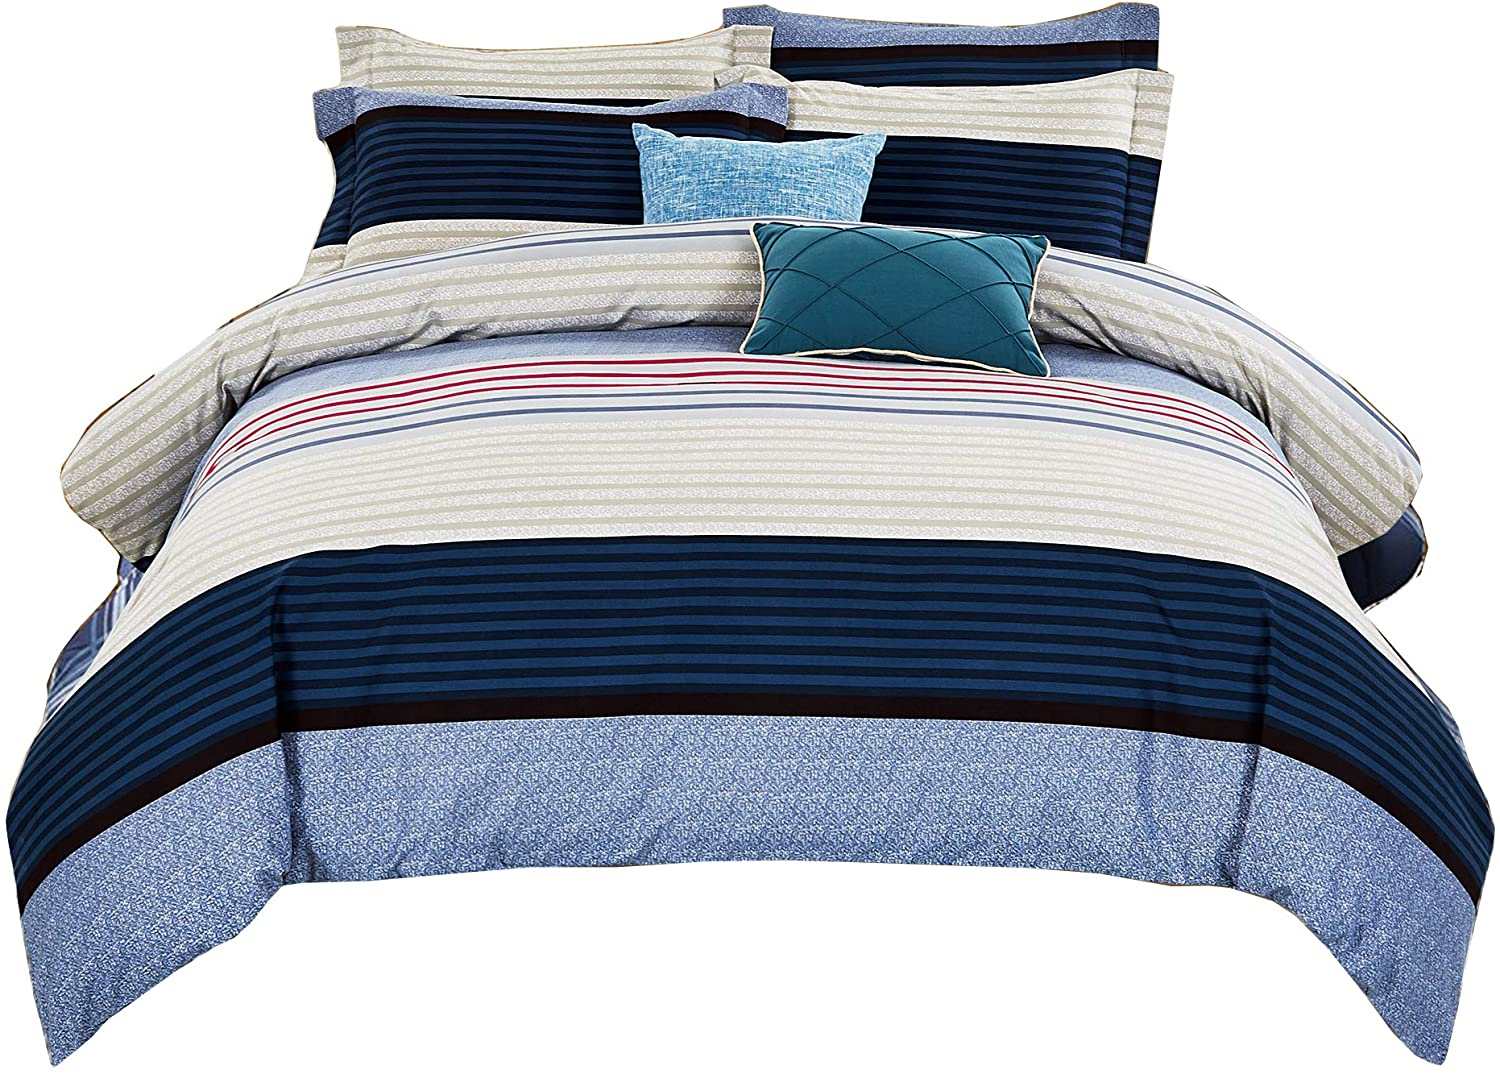 DelbouTree Striped Duvet Cover Set,Comforter Cover with Zipper Closure,Corner Ties,Queen in Blue 90 by 90 Inch